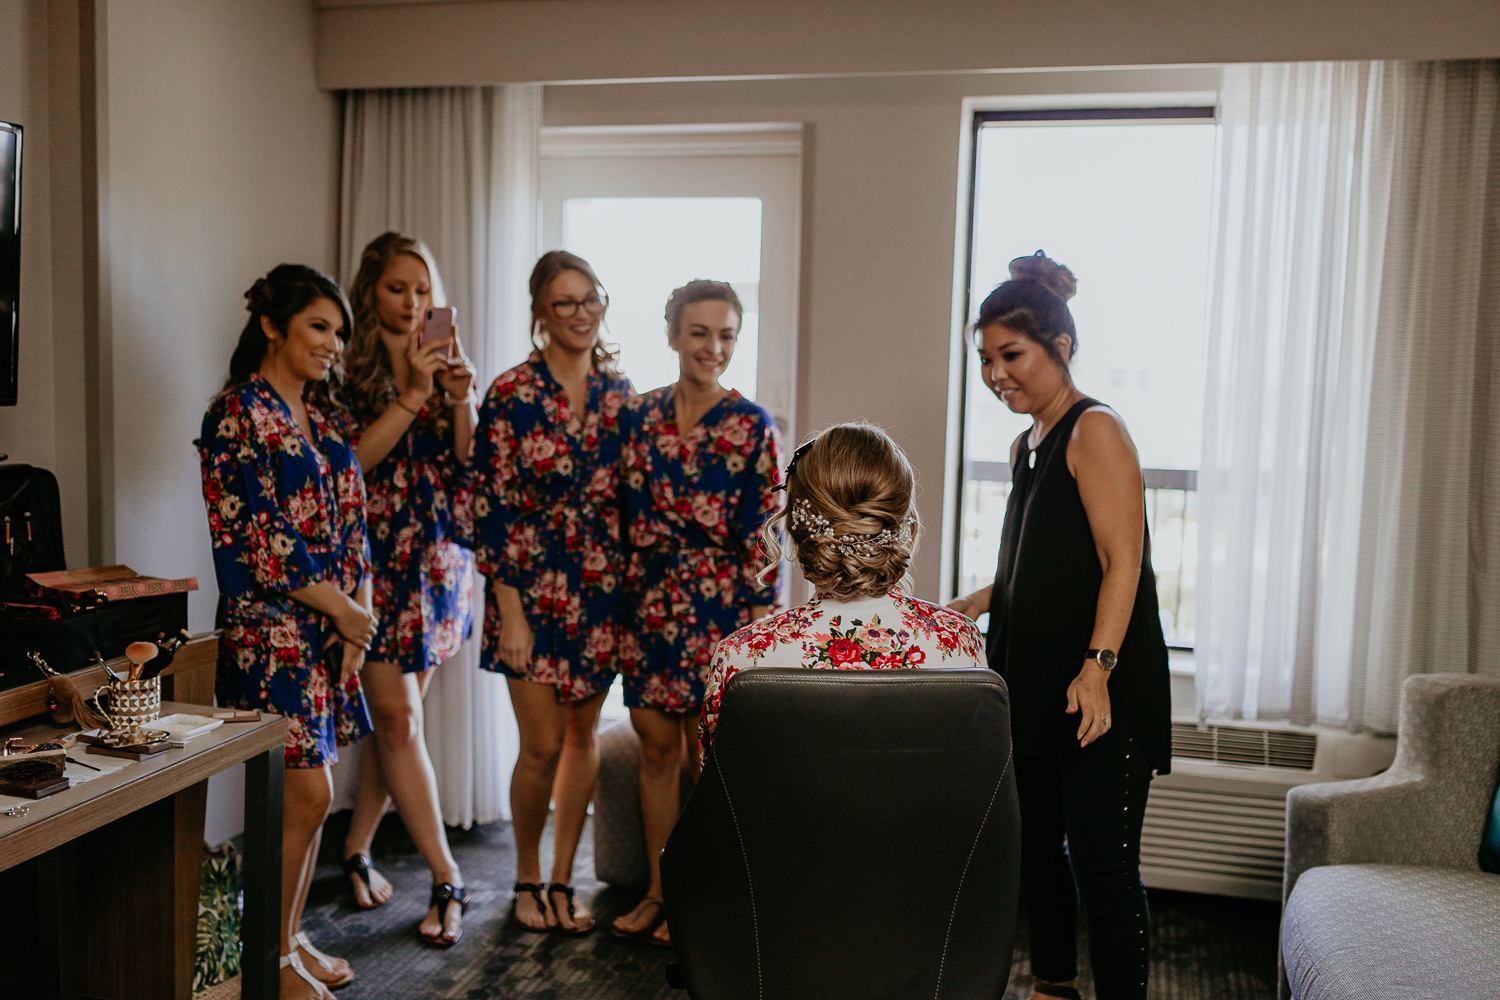 bridesmaids smiling at bride and taking pictures, all wearing robes